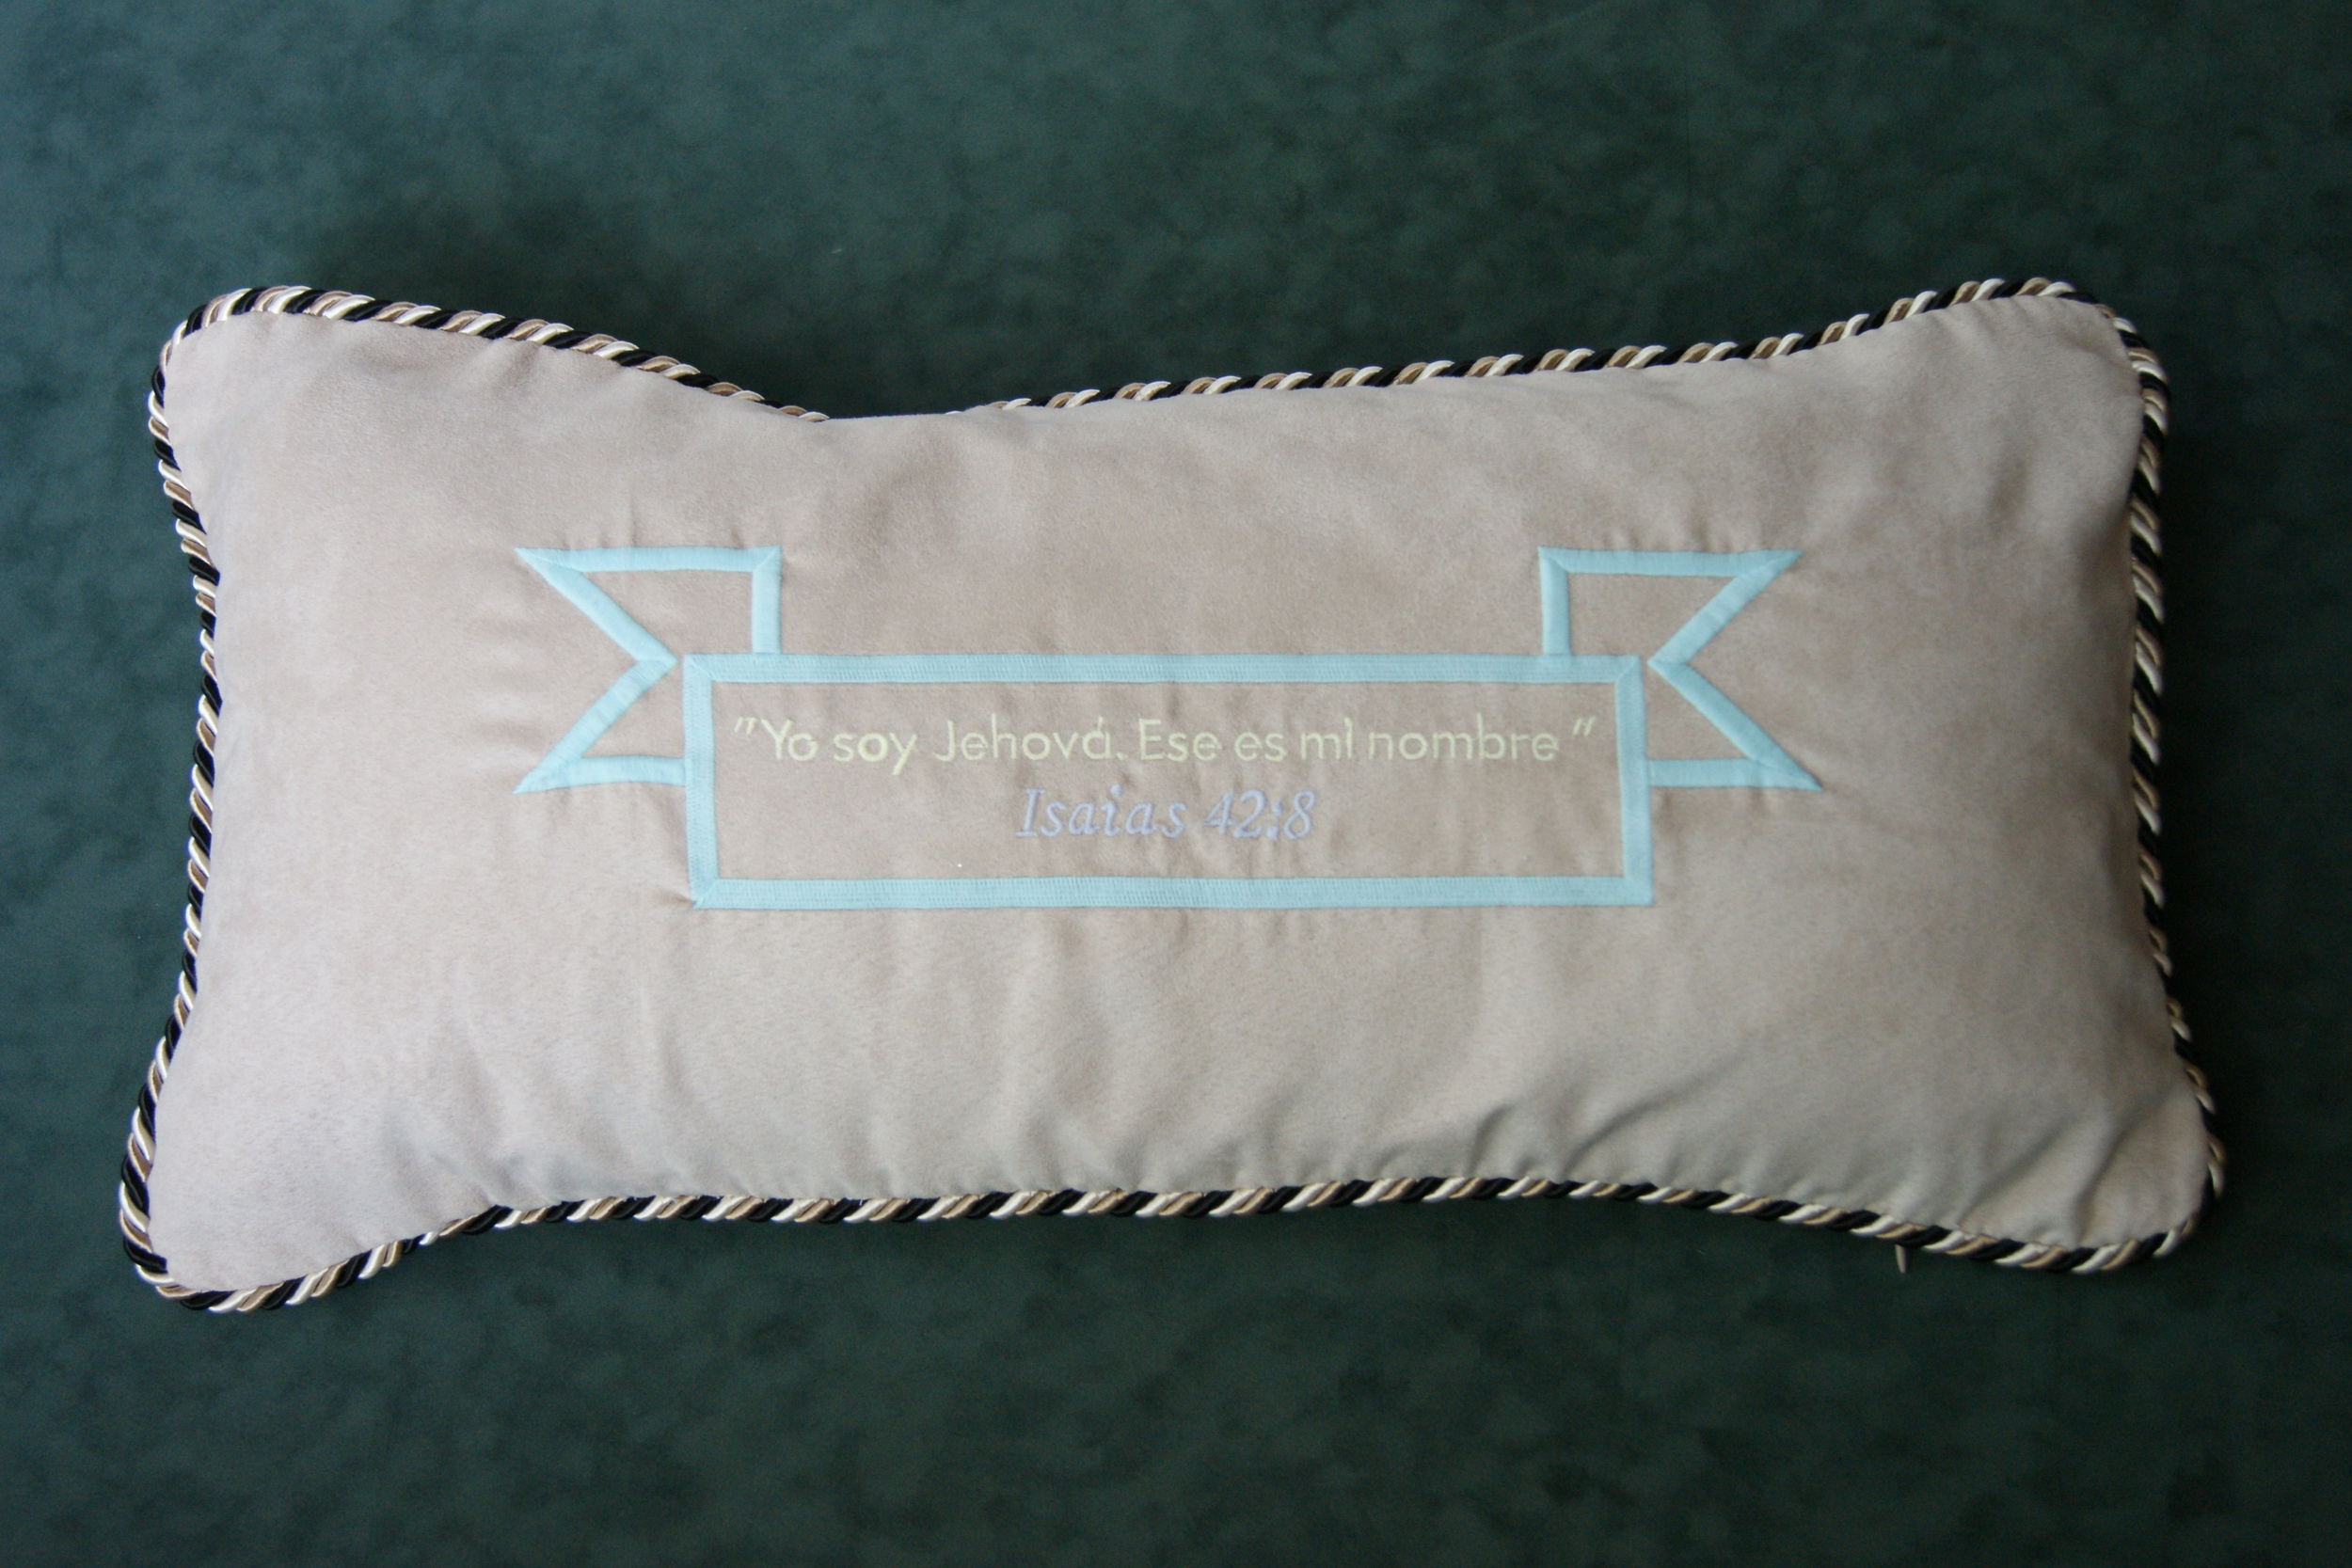 Pillows embroidery - glow in the dark ADD YOVORITE SCRIPTURE FROM ANY BIBLE .